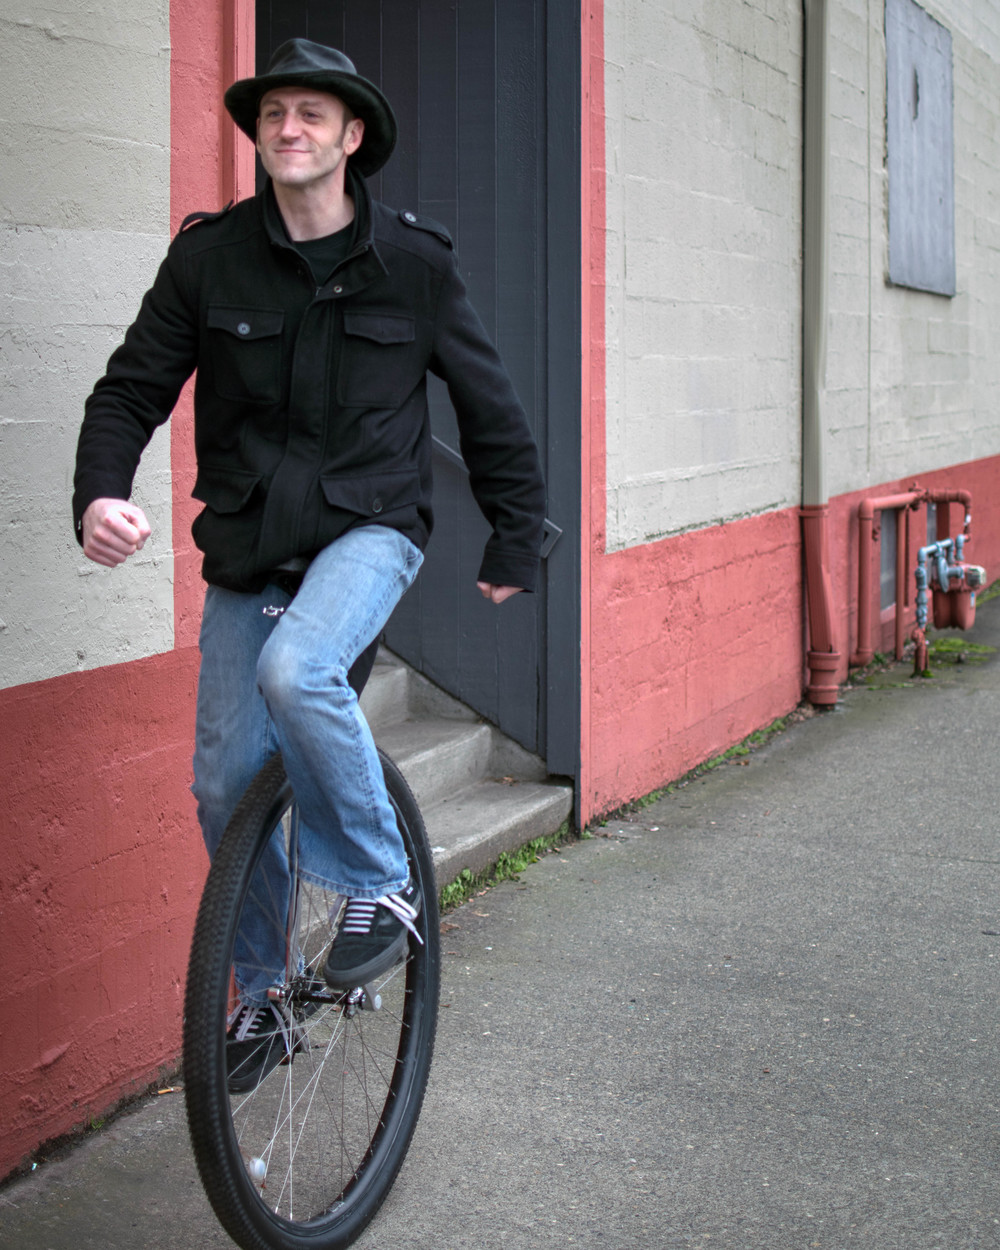 Unicyclist riding around town | Porland, OR